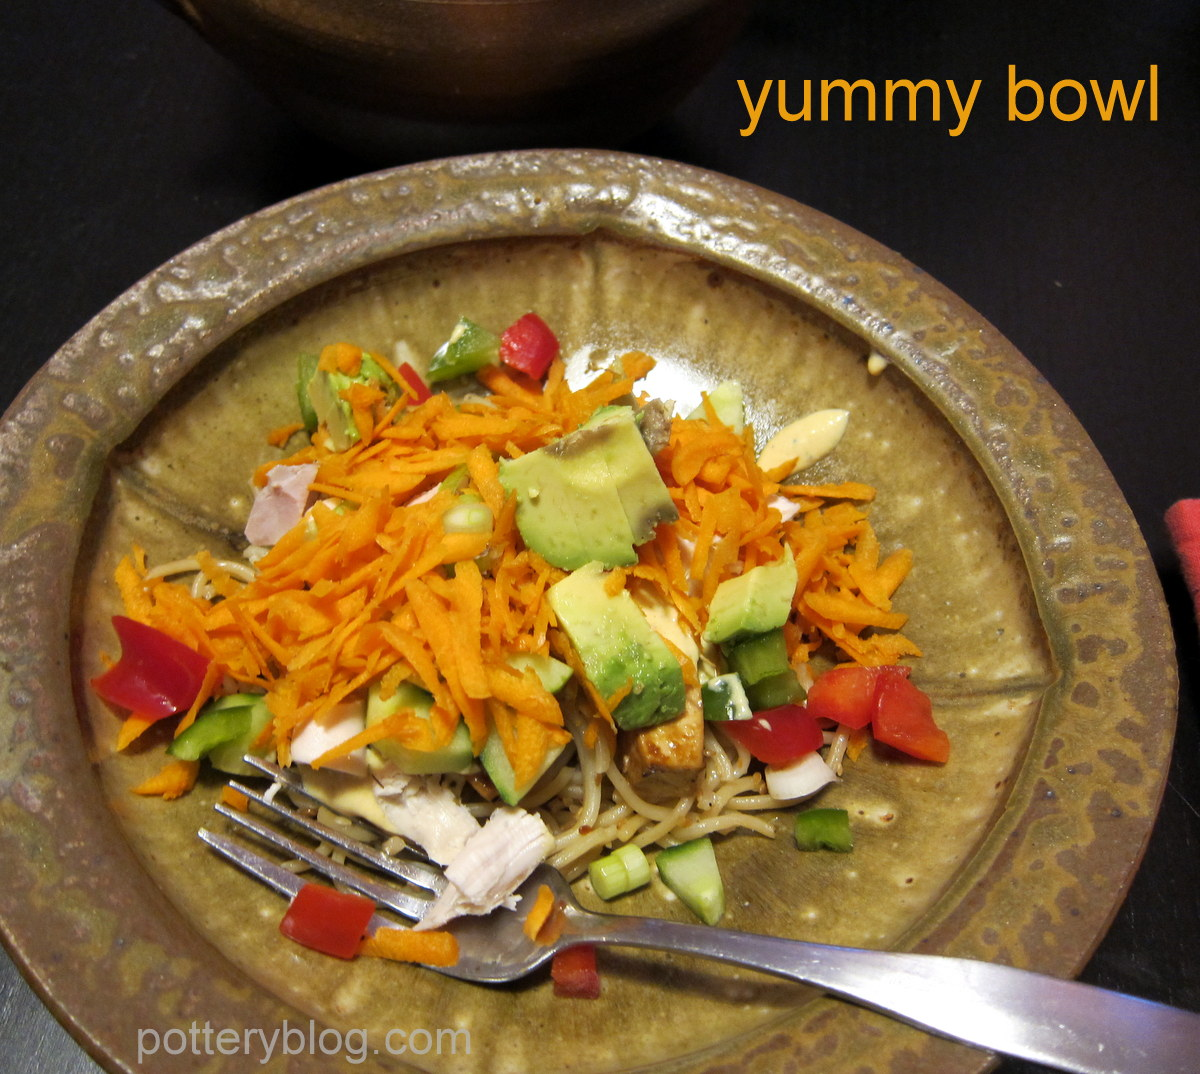 Yummy bowls pottery blog emily murphy now forumfinder Choice Image